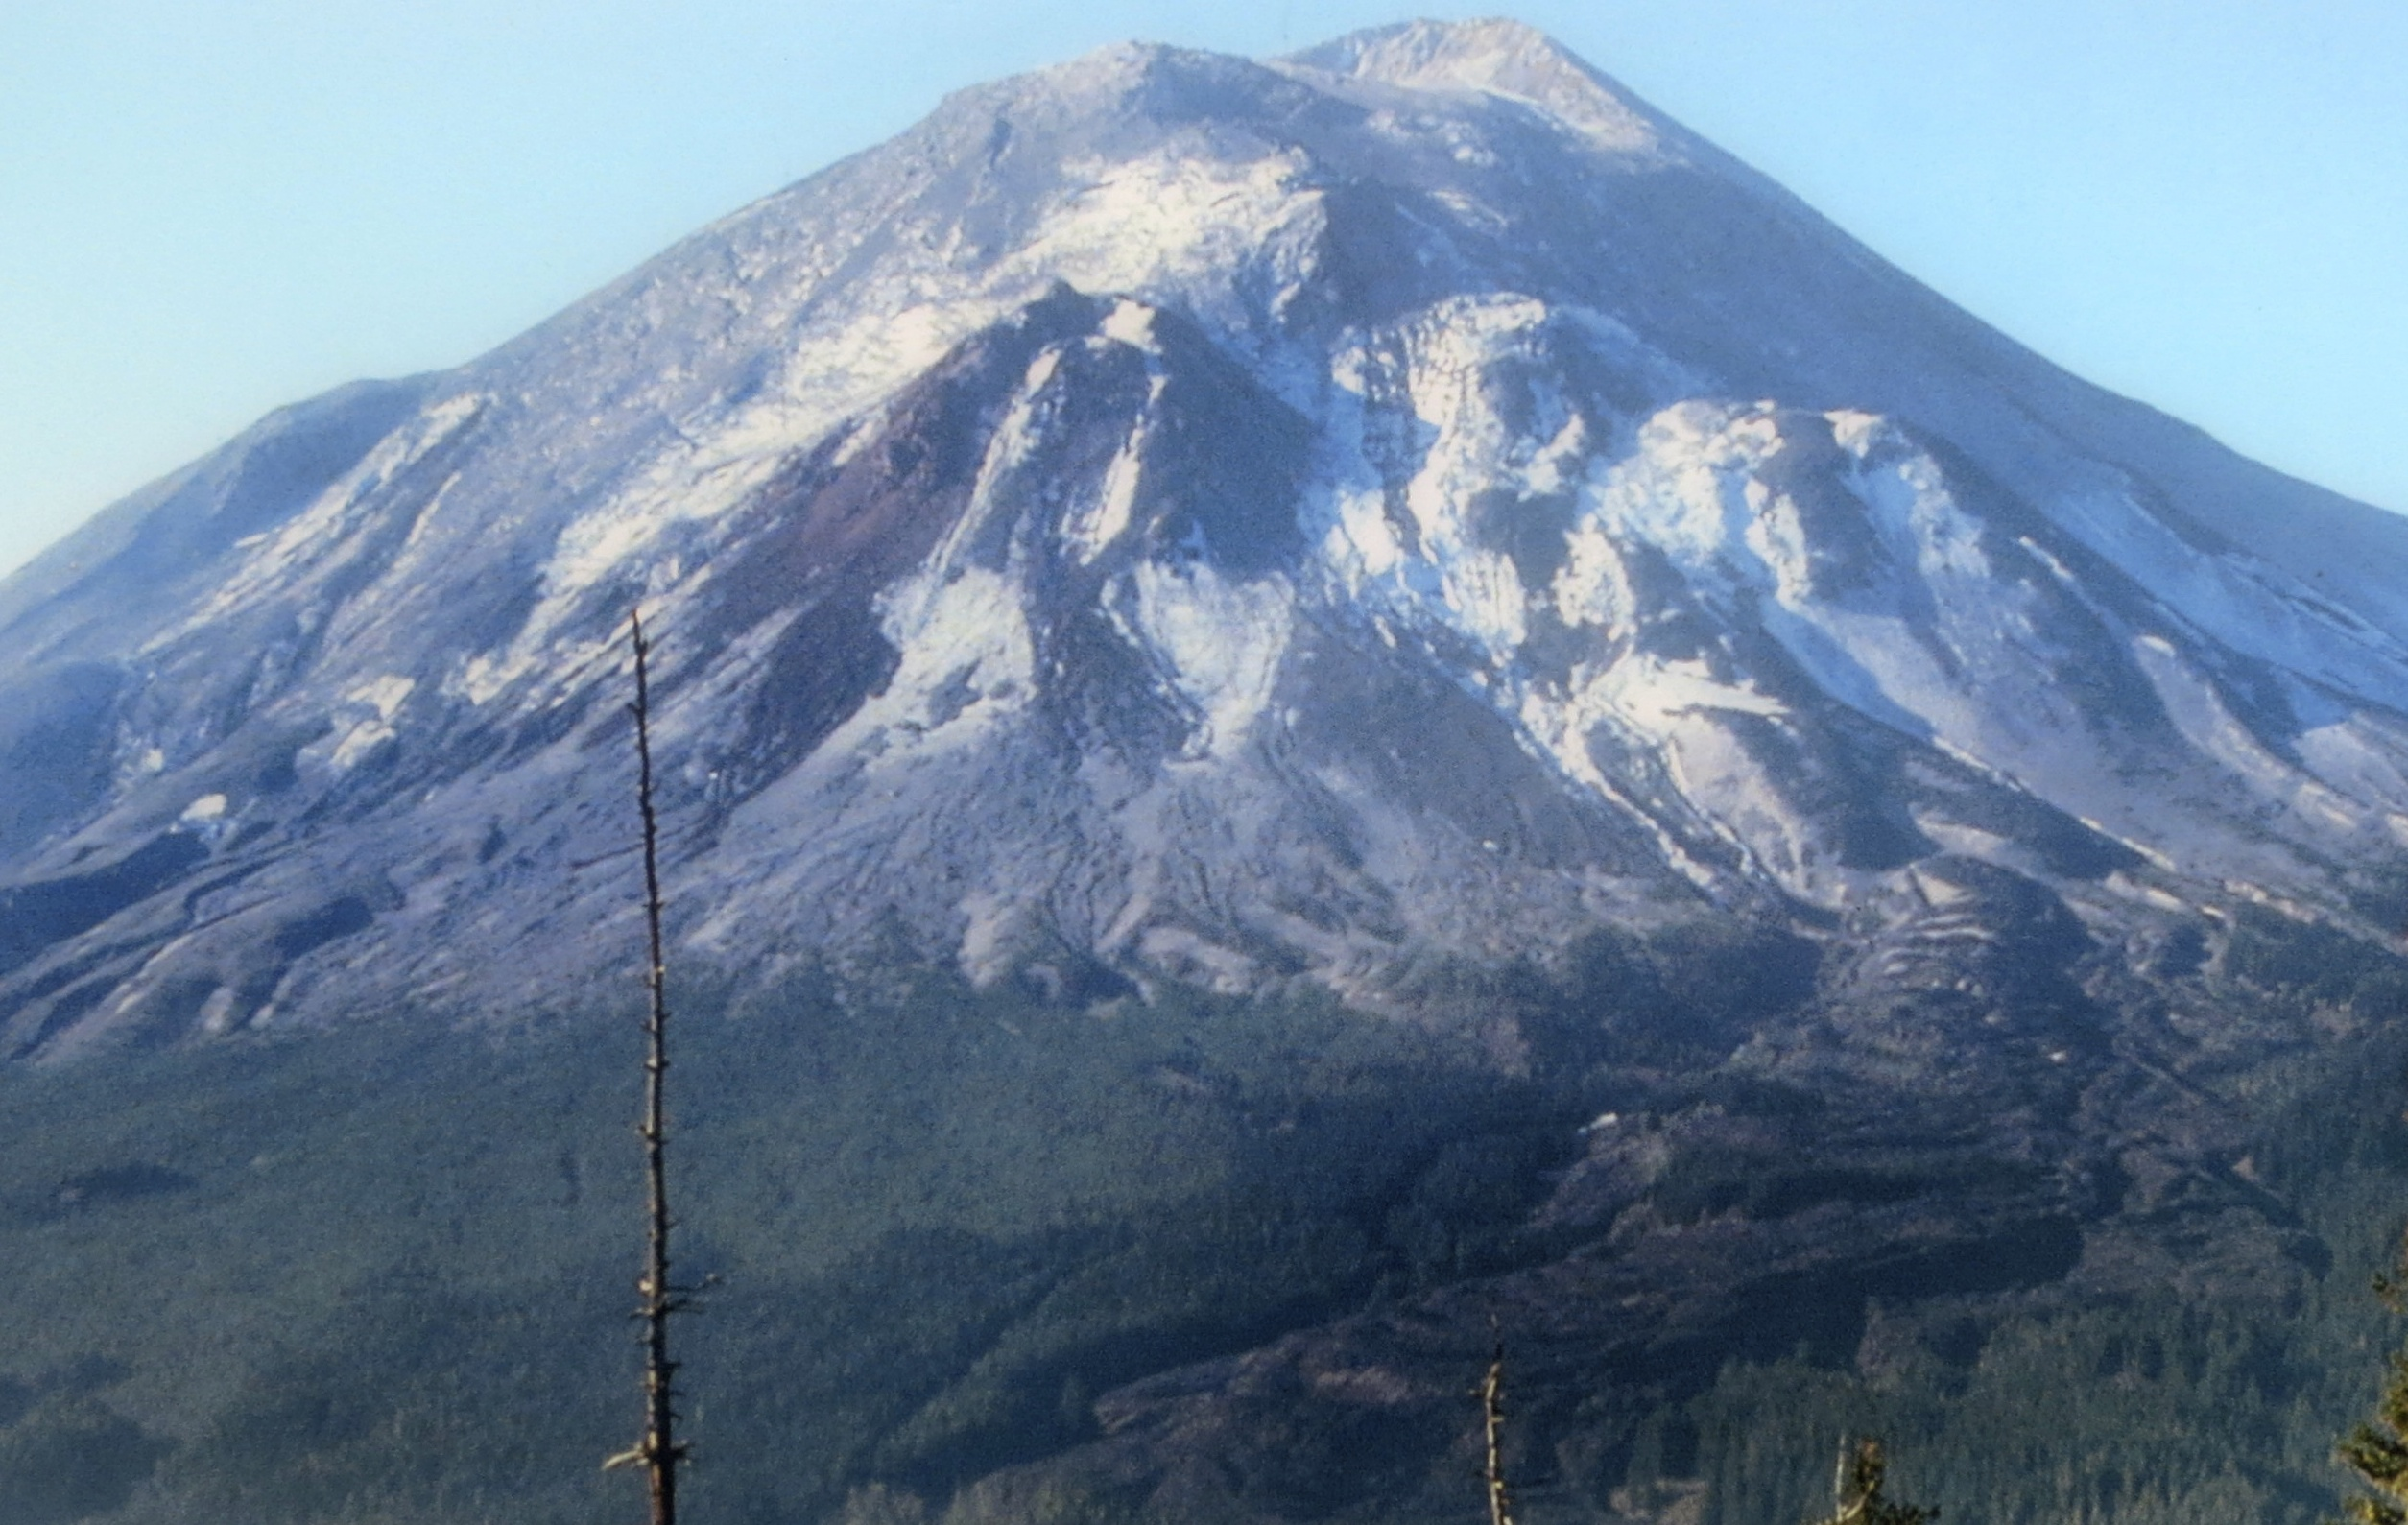 This photo on display at the Mount St. Helens National Monument shows the mountain before the explosion.